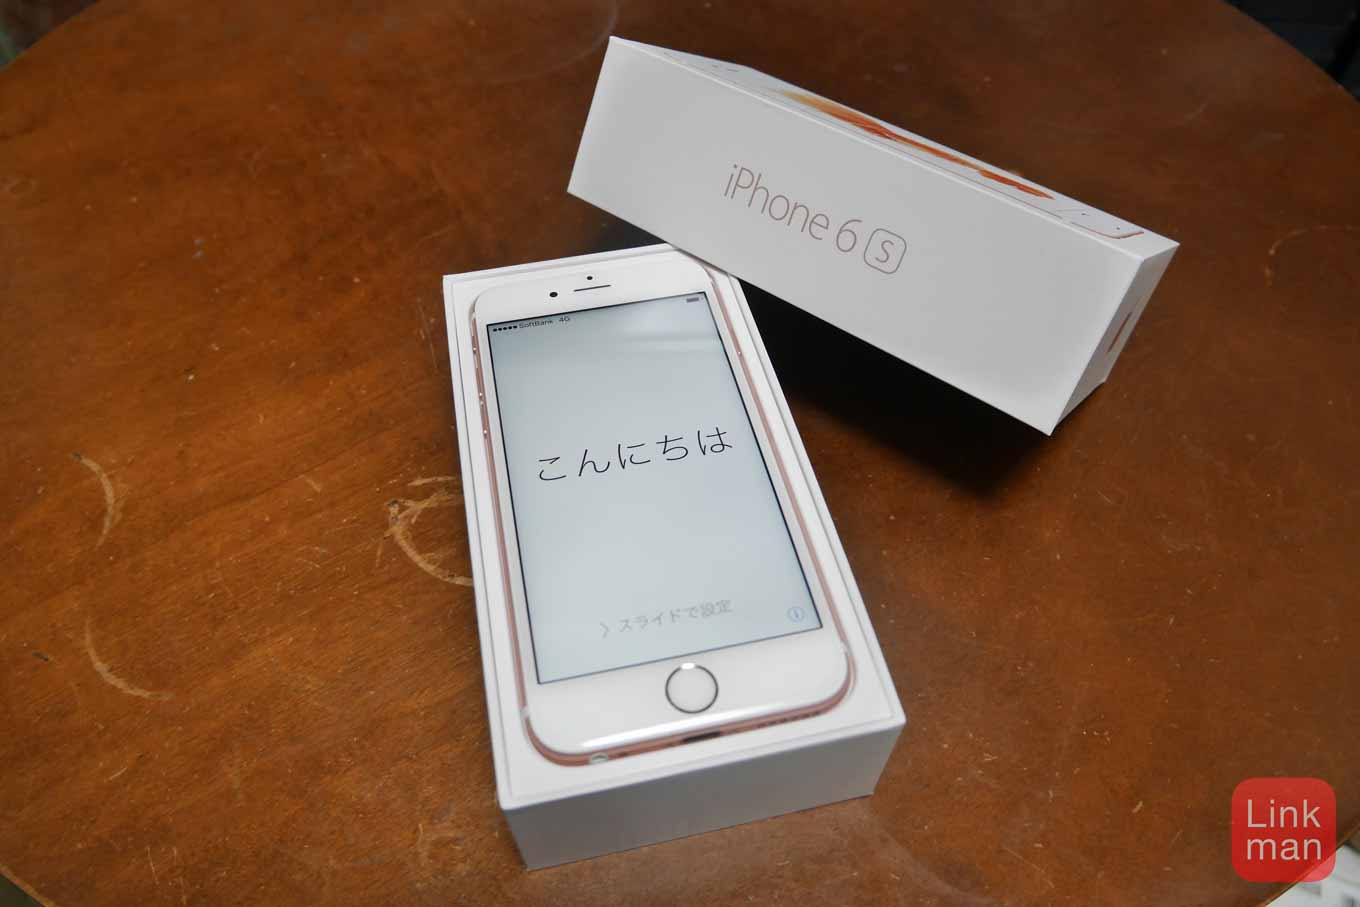 Iphone6sphotoreview 03